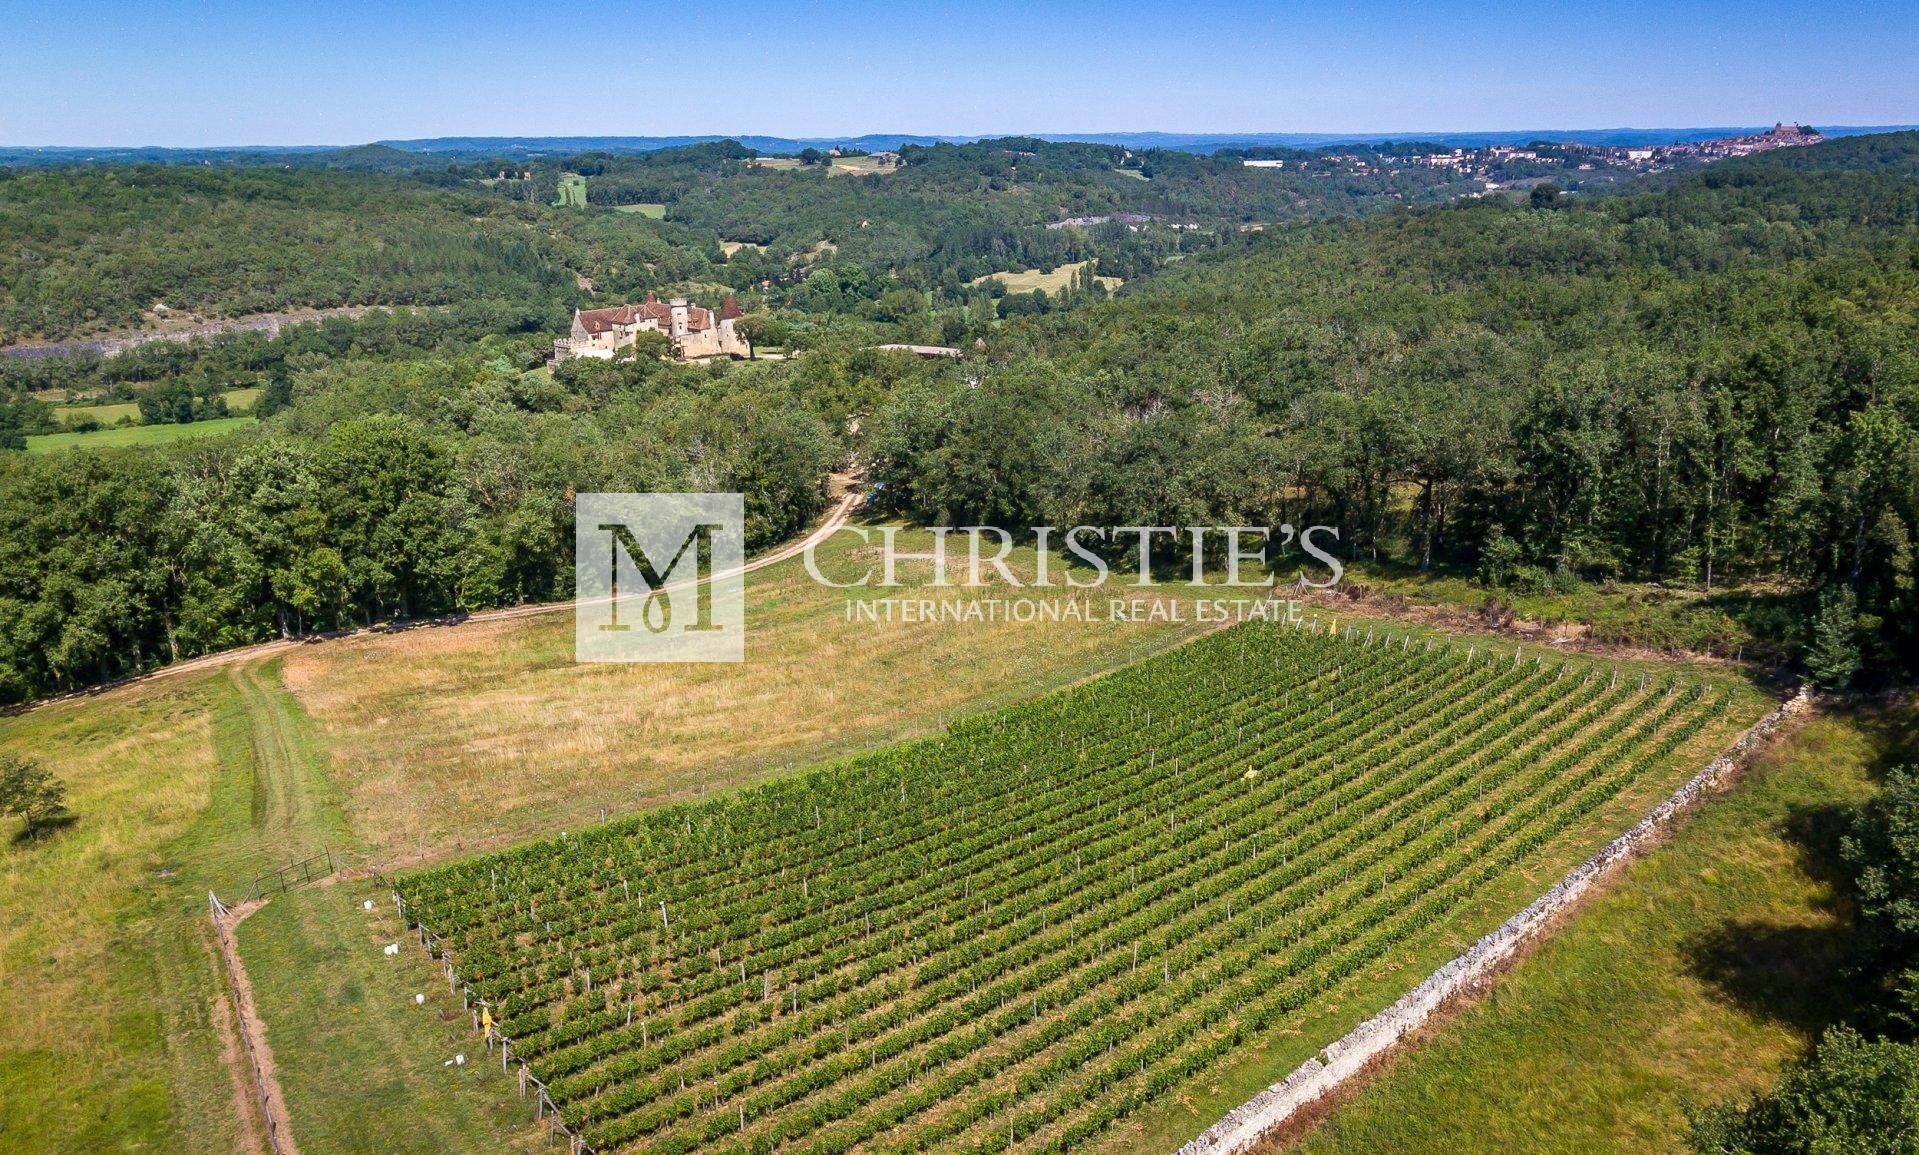 Ariel view of chateau and vineyard